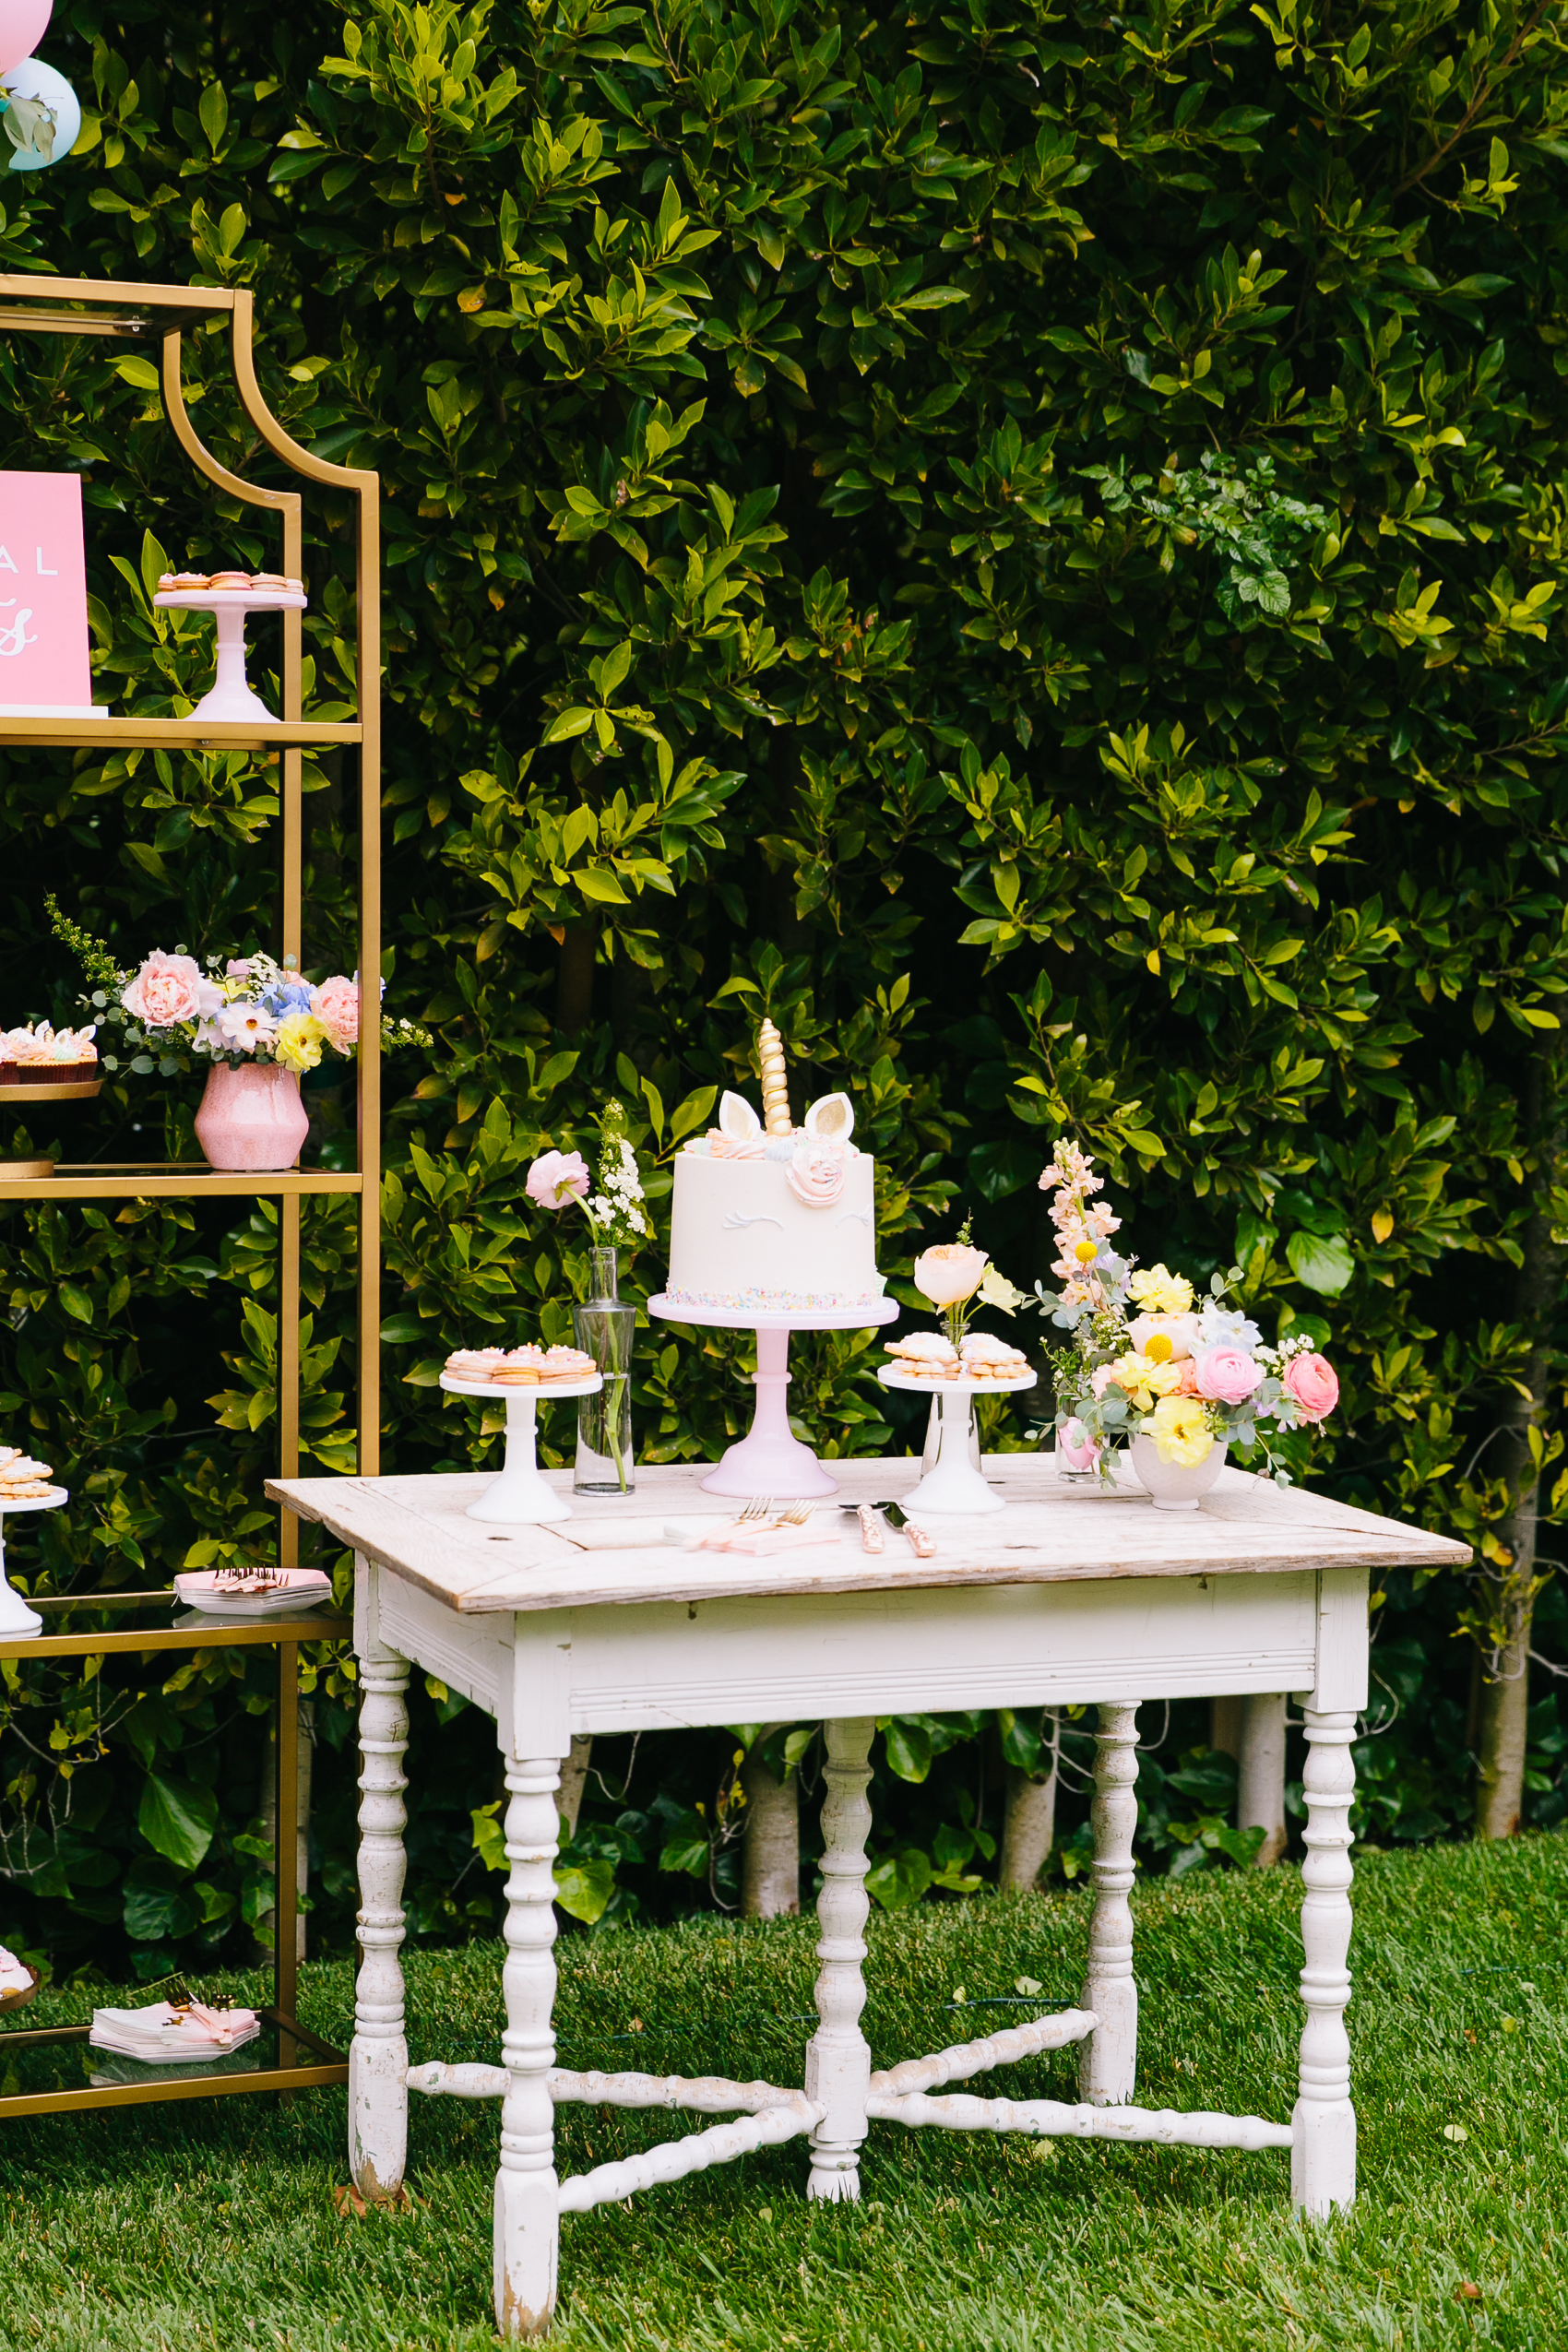 Los_Angeles_Family_Photographer_Luxury_Childrens_Party_Beverly_Hills_Unicorn_Birthday_Party-0967.jpg